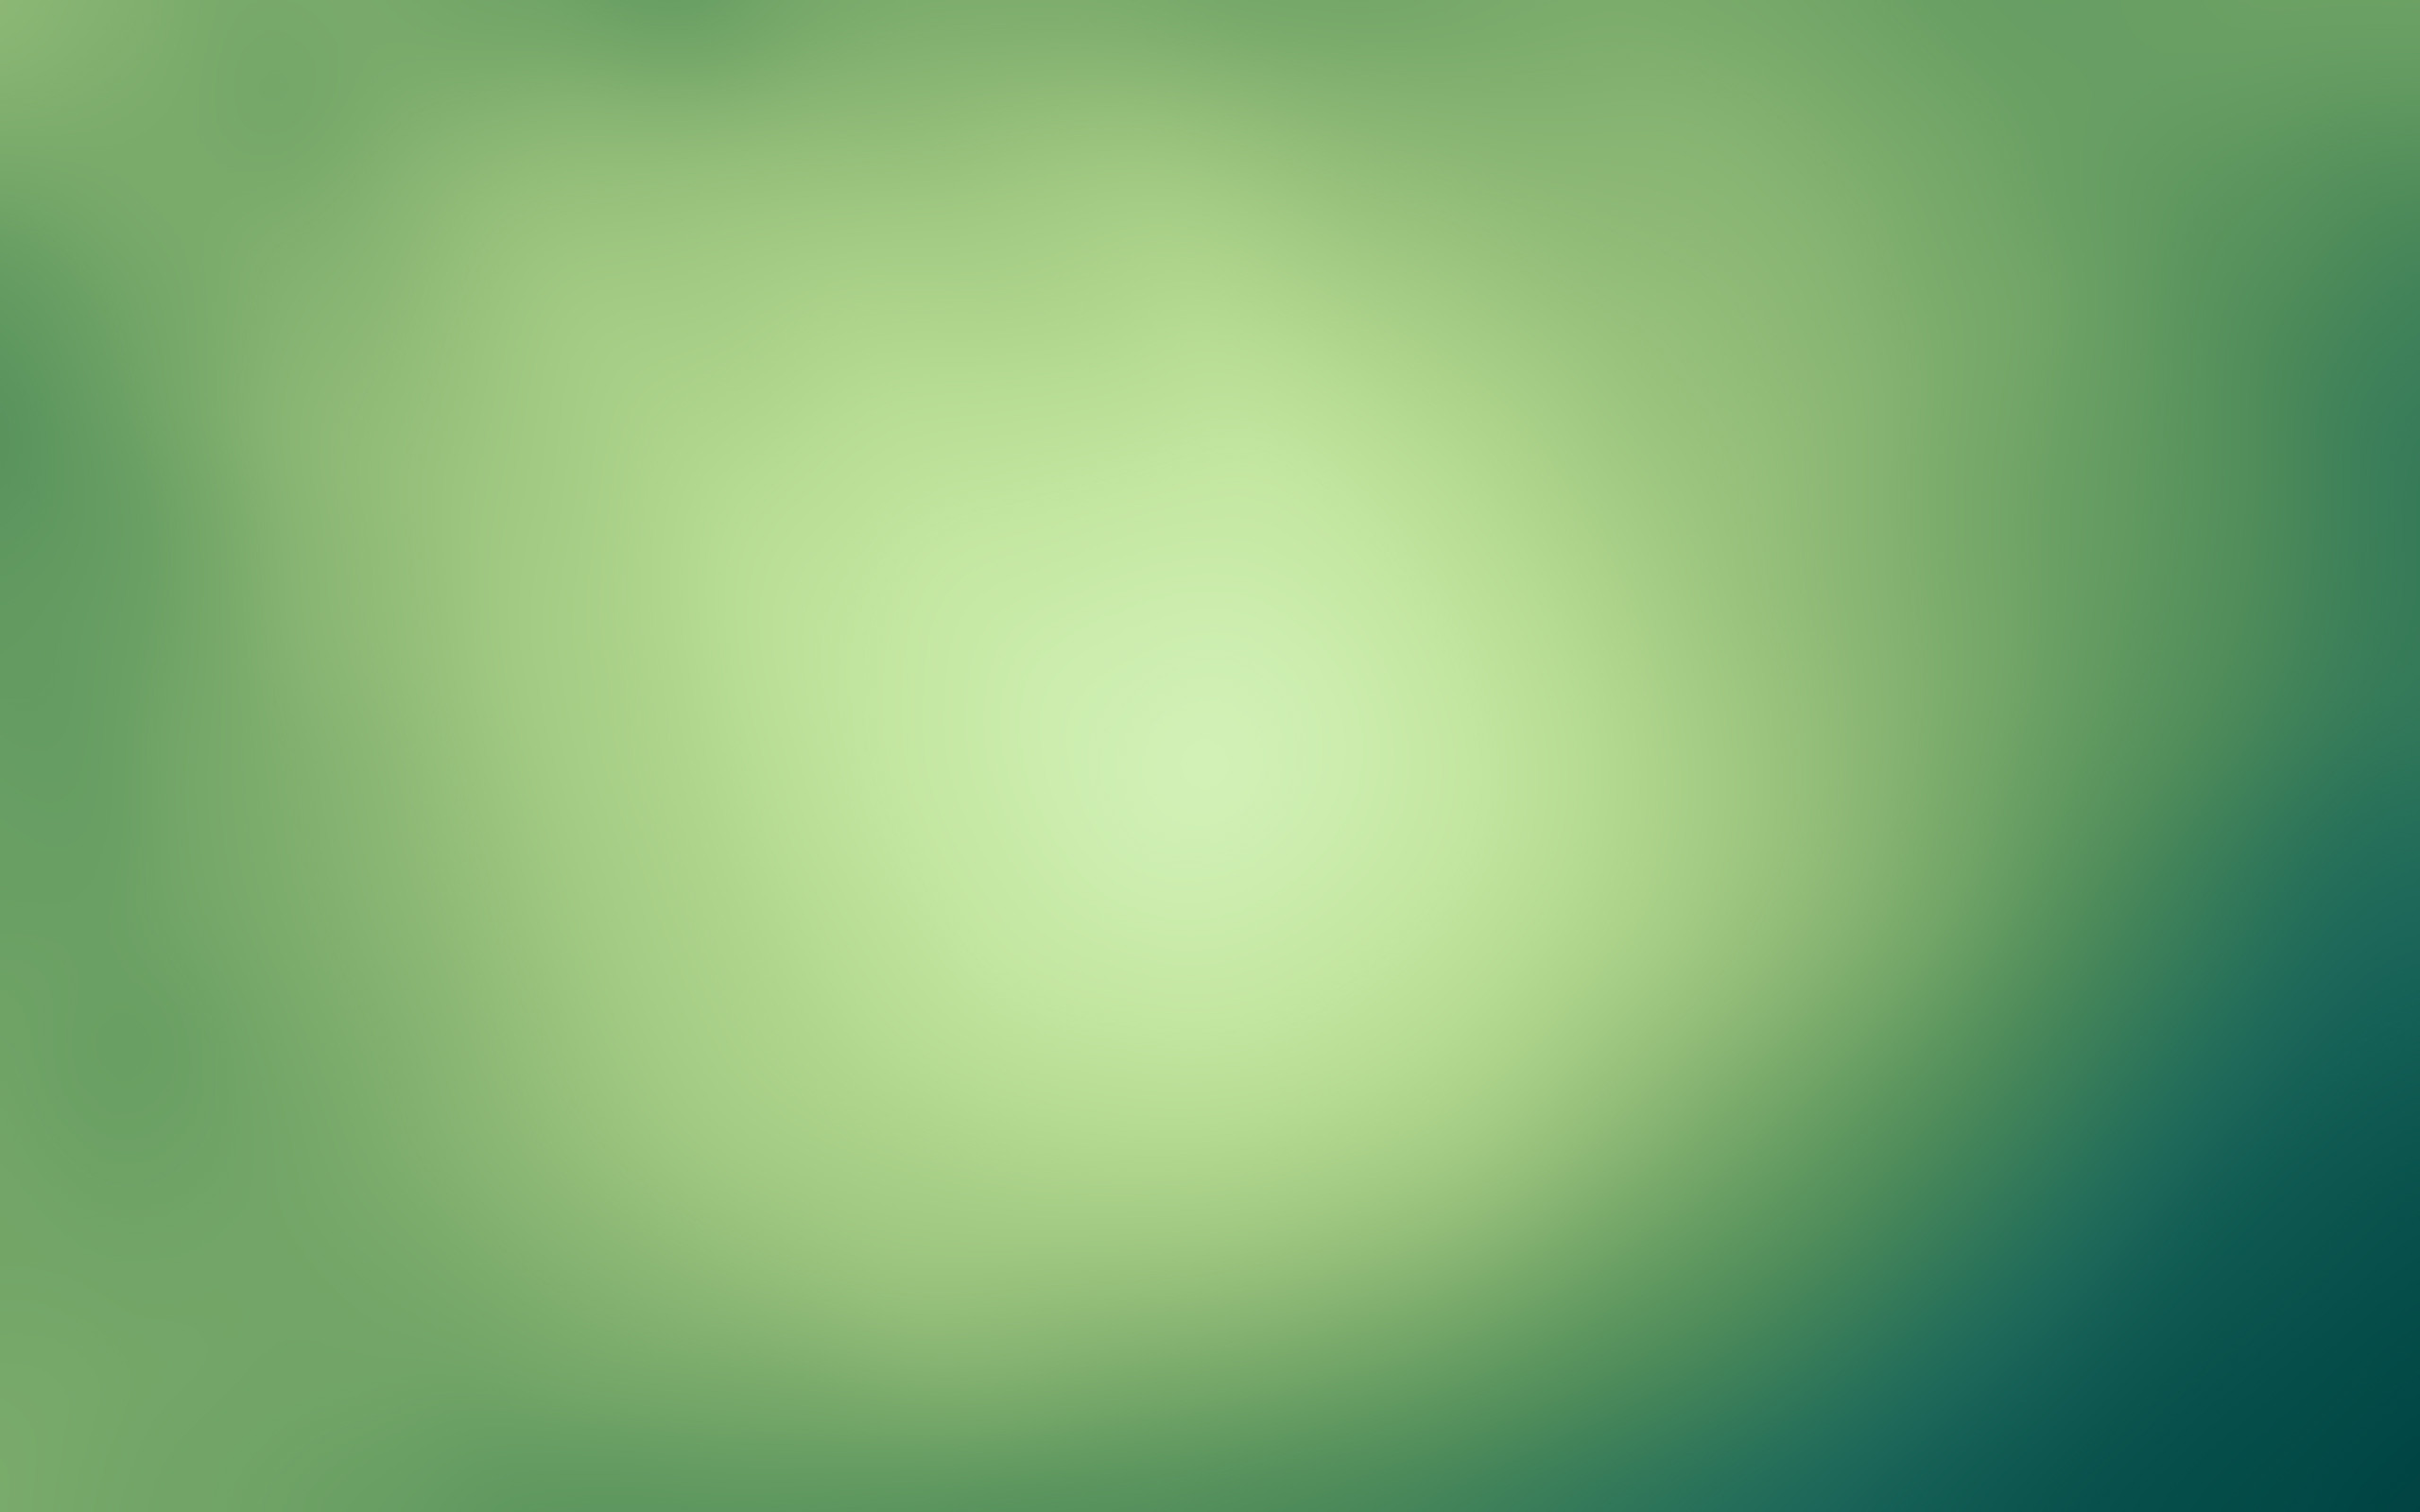 2560x1600 Free Solid Color Backgrounds | Green Color, Lightness and Darkness Differs,  Single Color Wallpaper